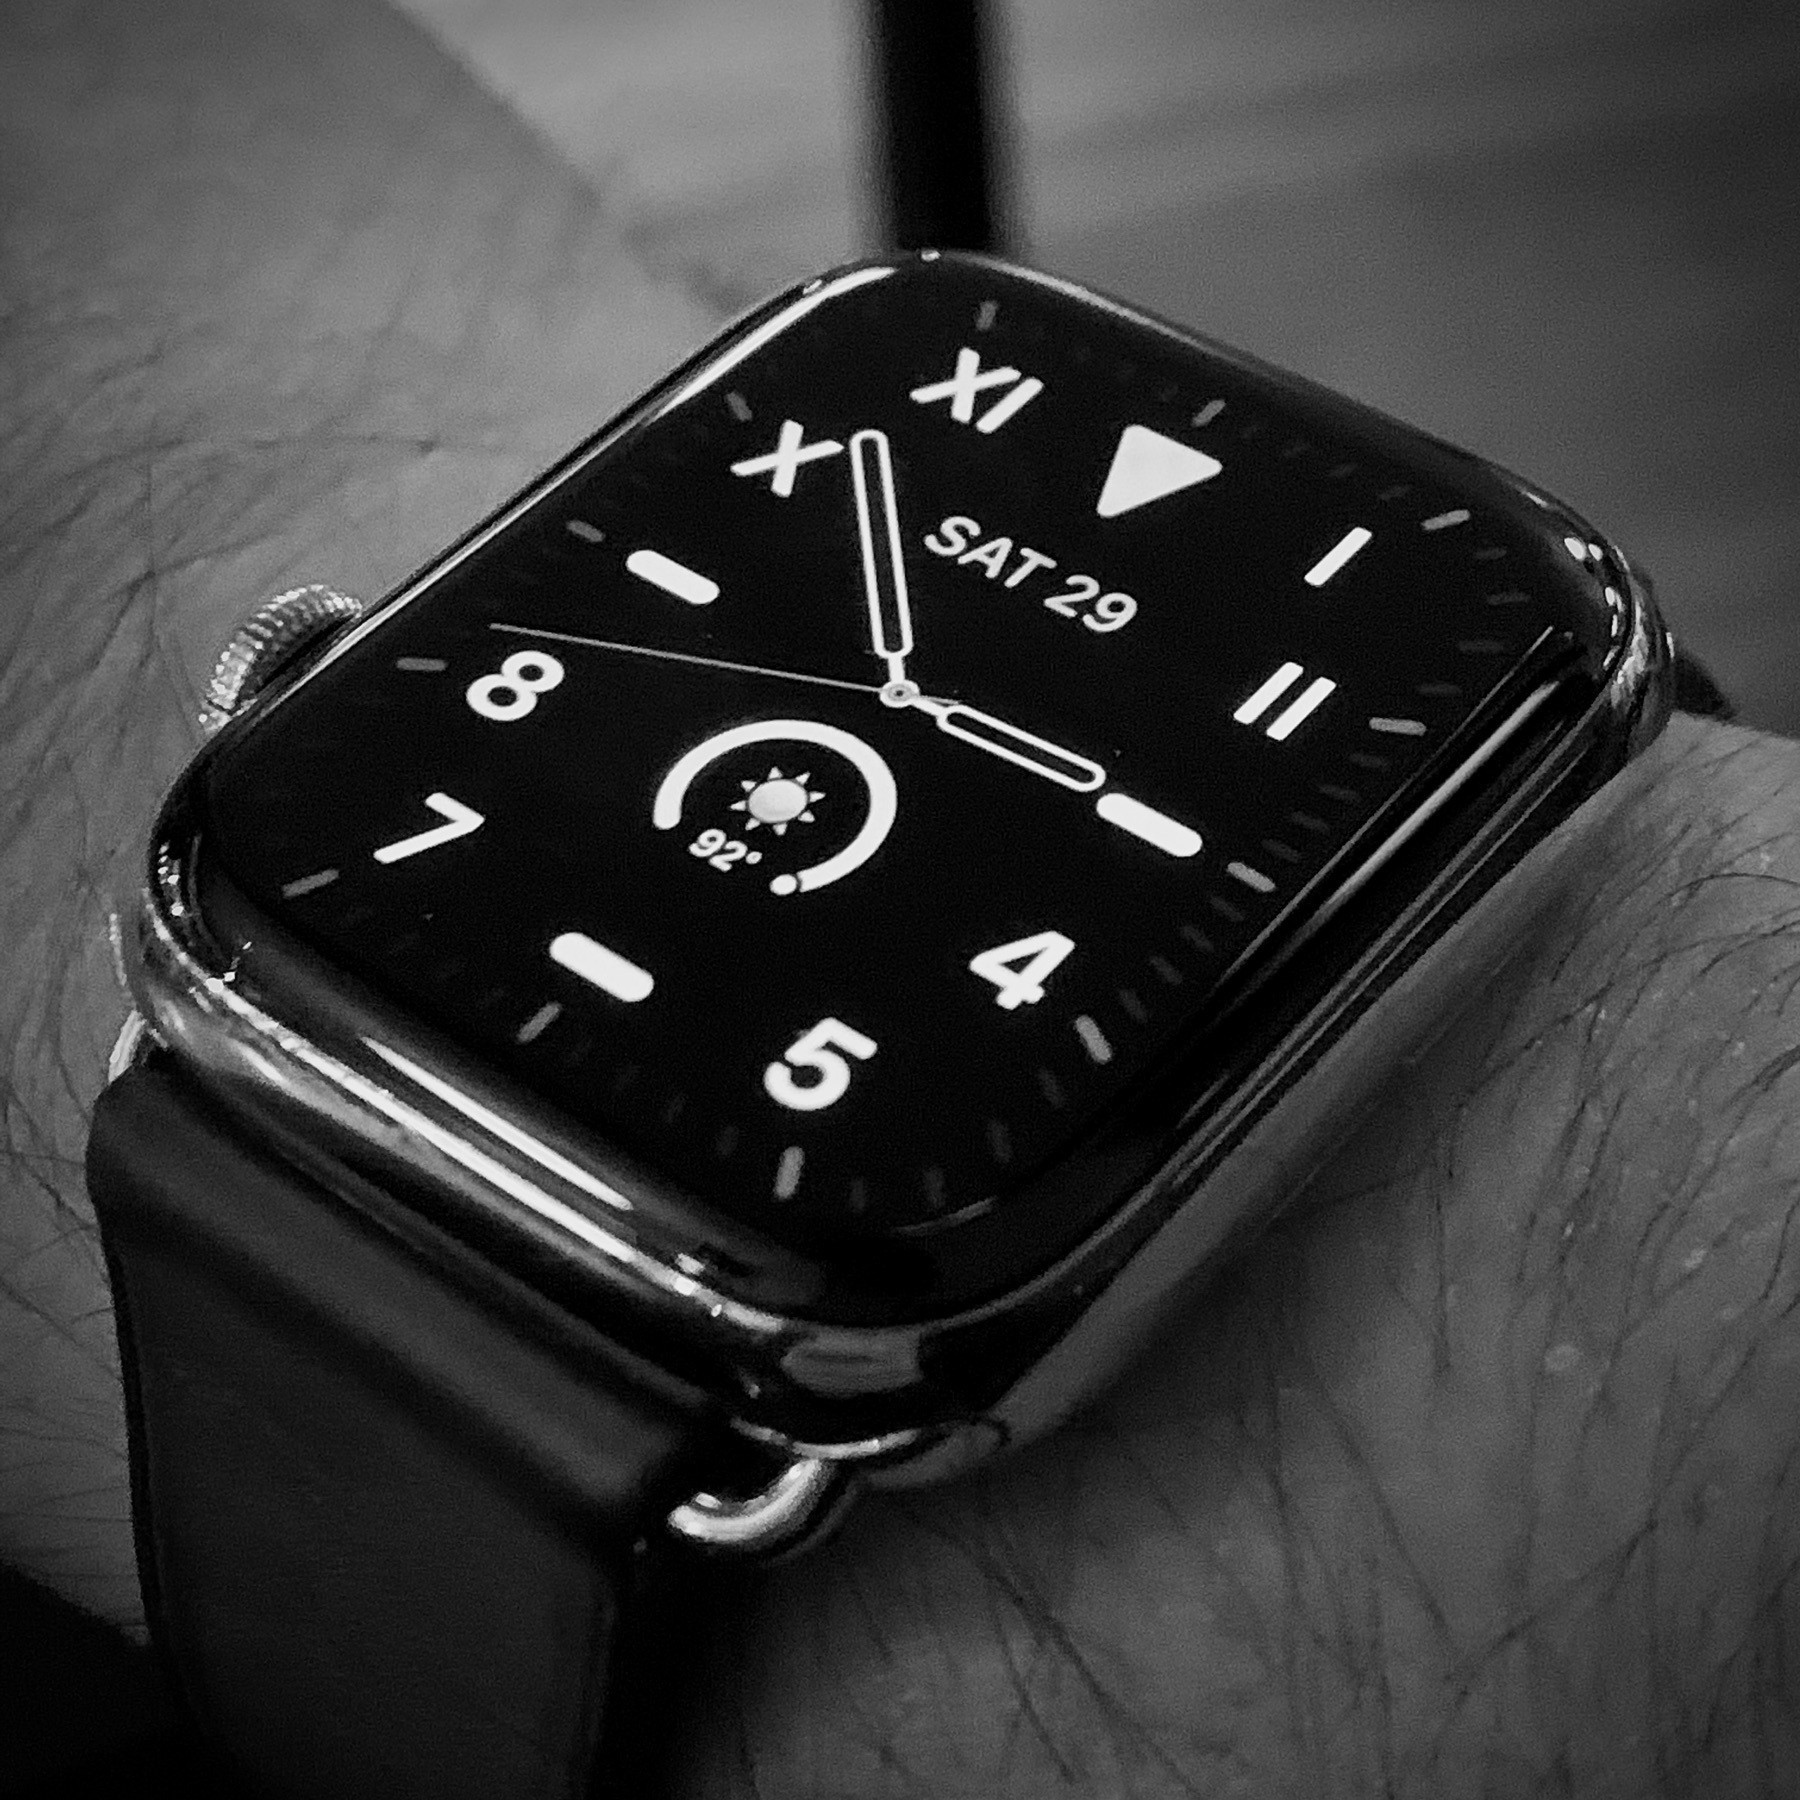 Apple Watch on wrist with California watch face, showing 2:53 pm.